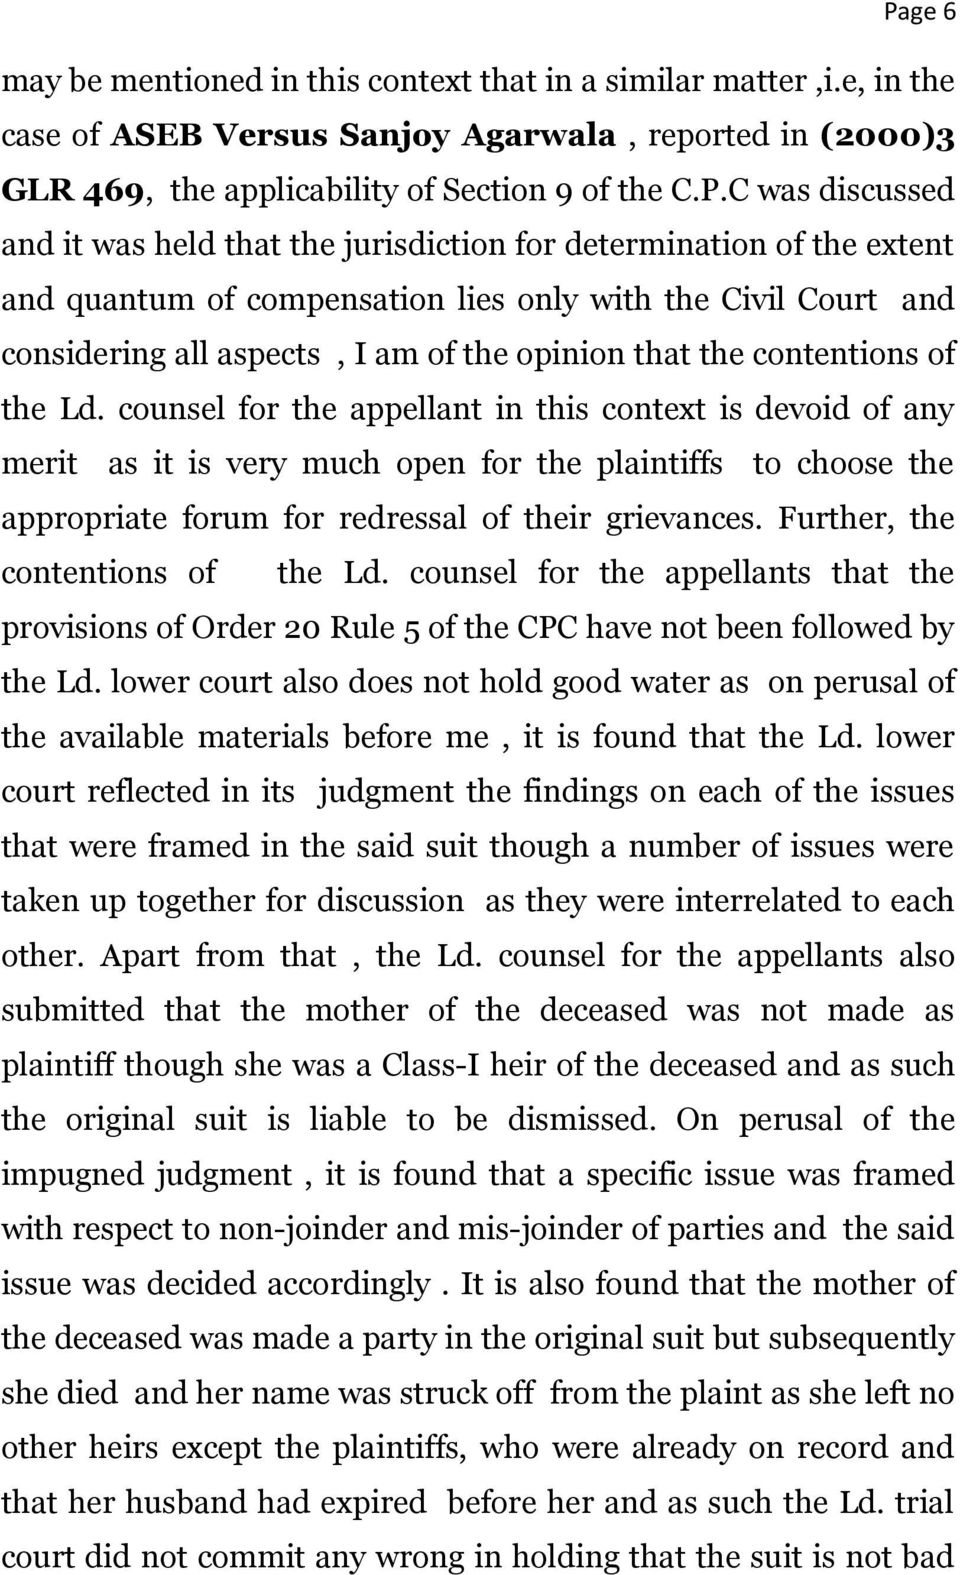 contentions of the Ld. counsel for the appellant in this context is devoid of any merit as it is very much open for the plaintiffs to choose the appropriate forum for redressal of their grievances.